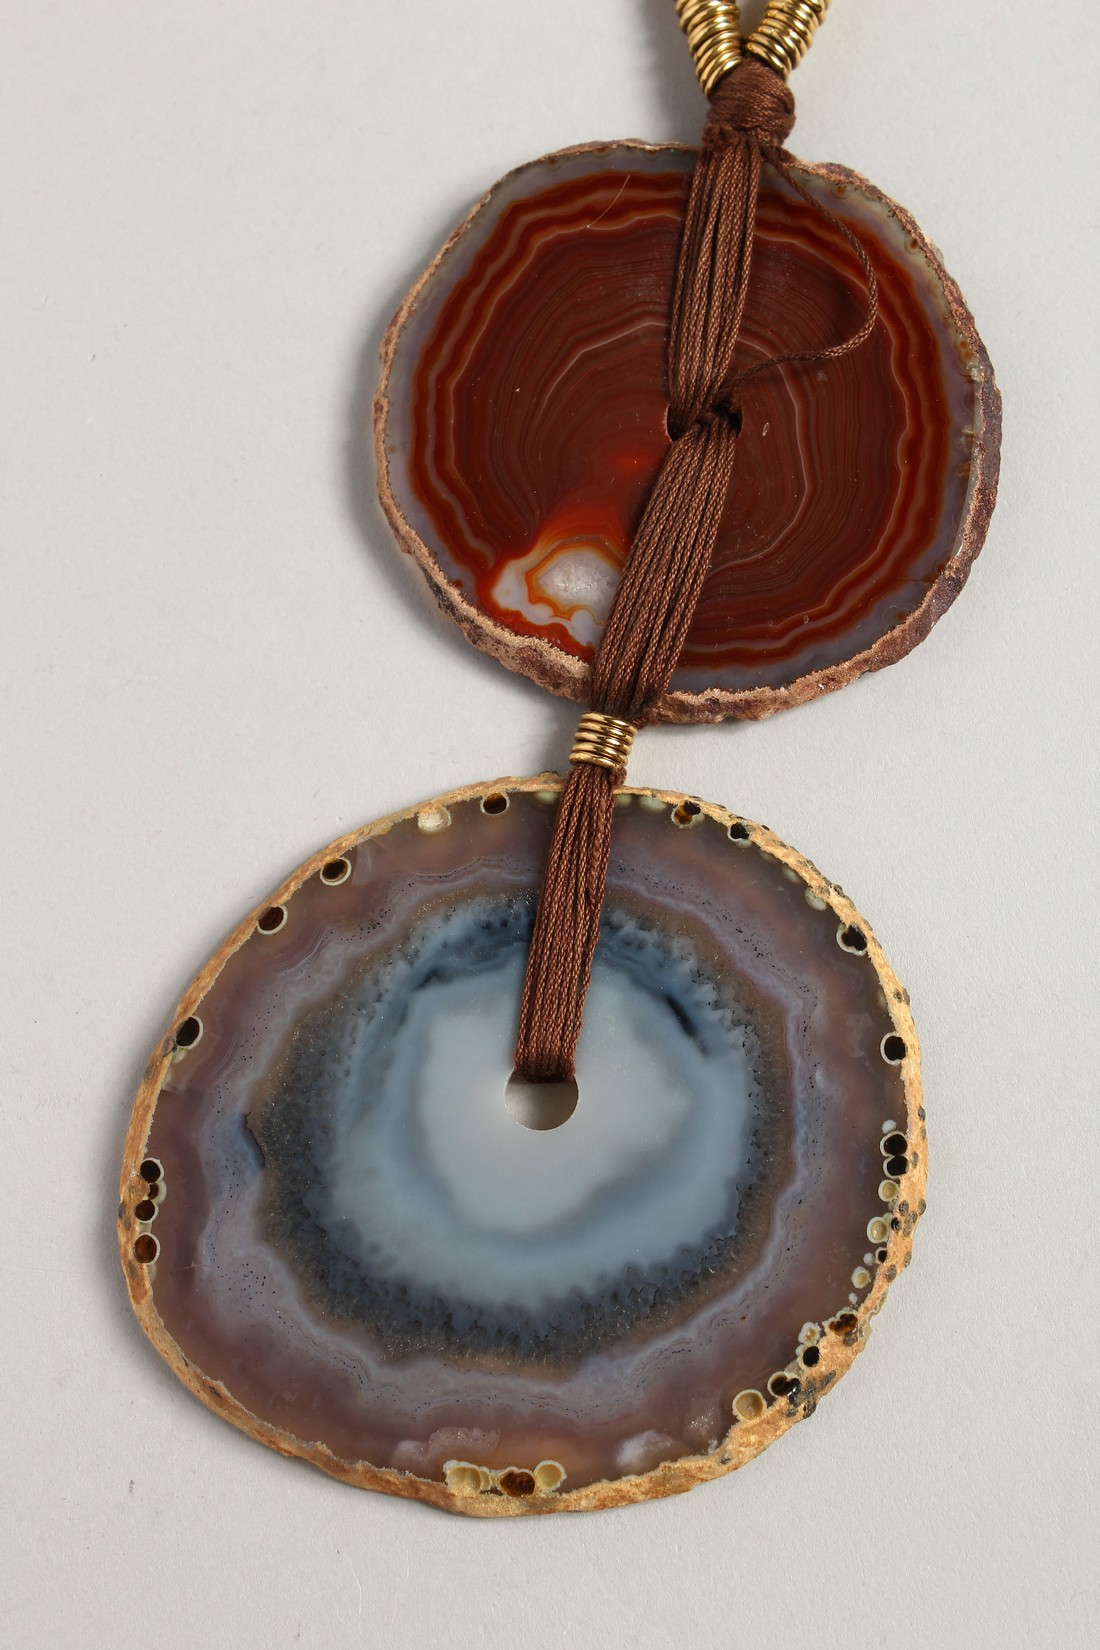 A YVES SAINT LAURENT AGATE NECKLALCE - Image 2 of 4